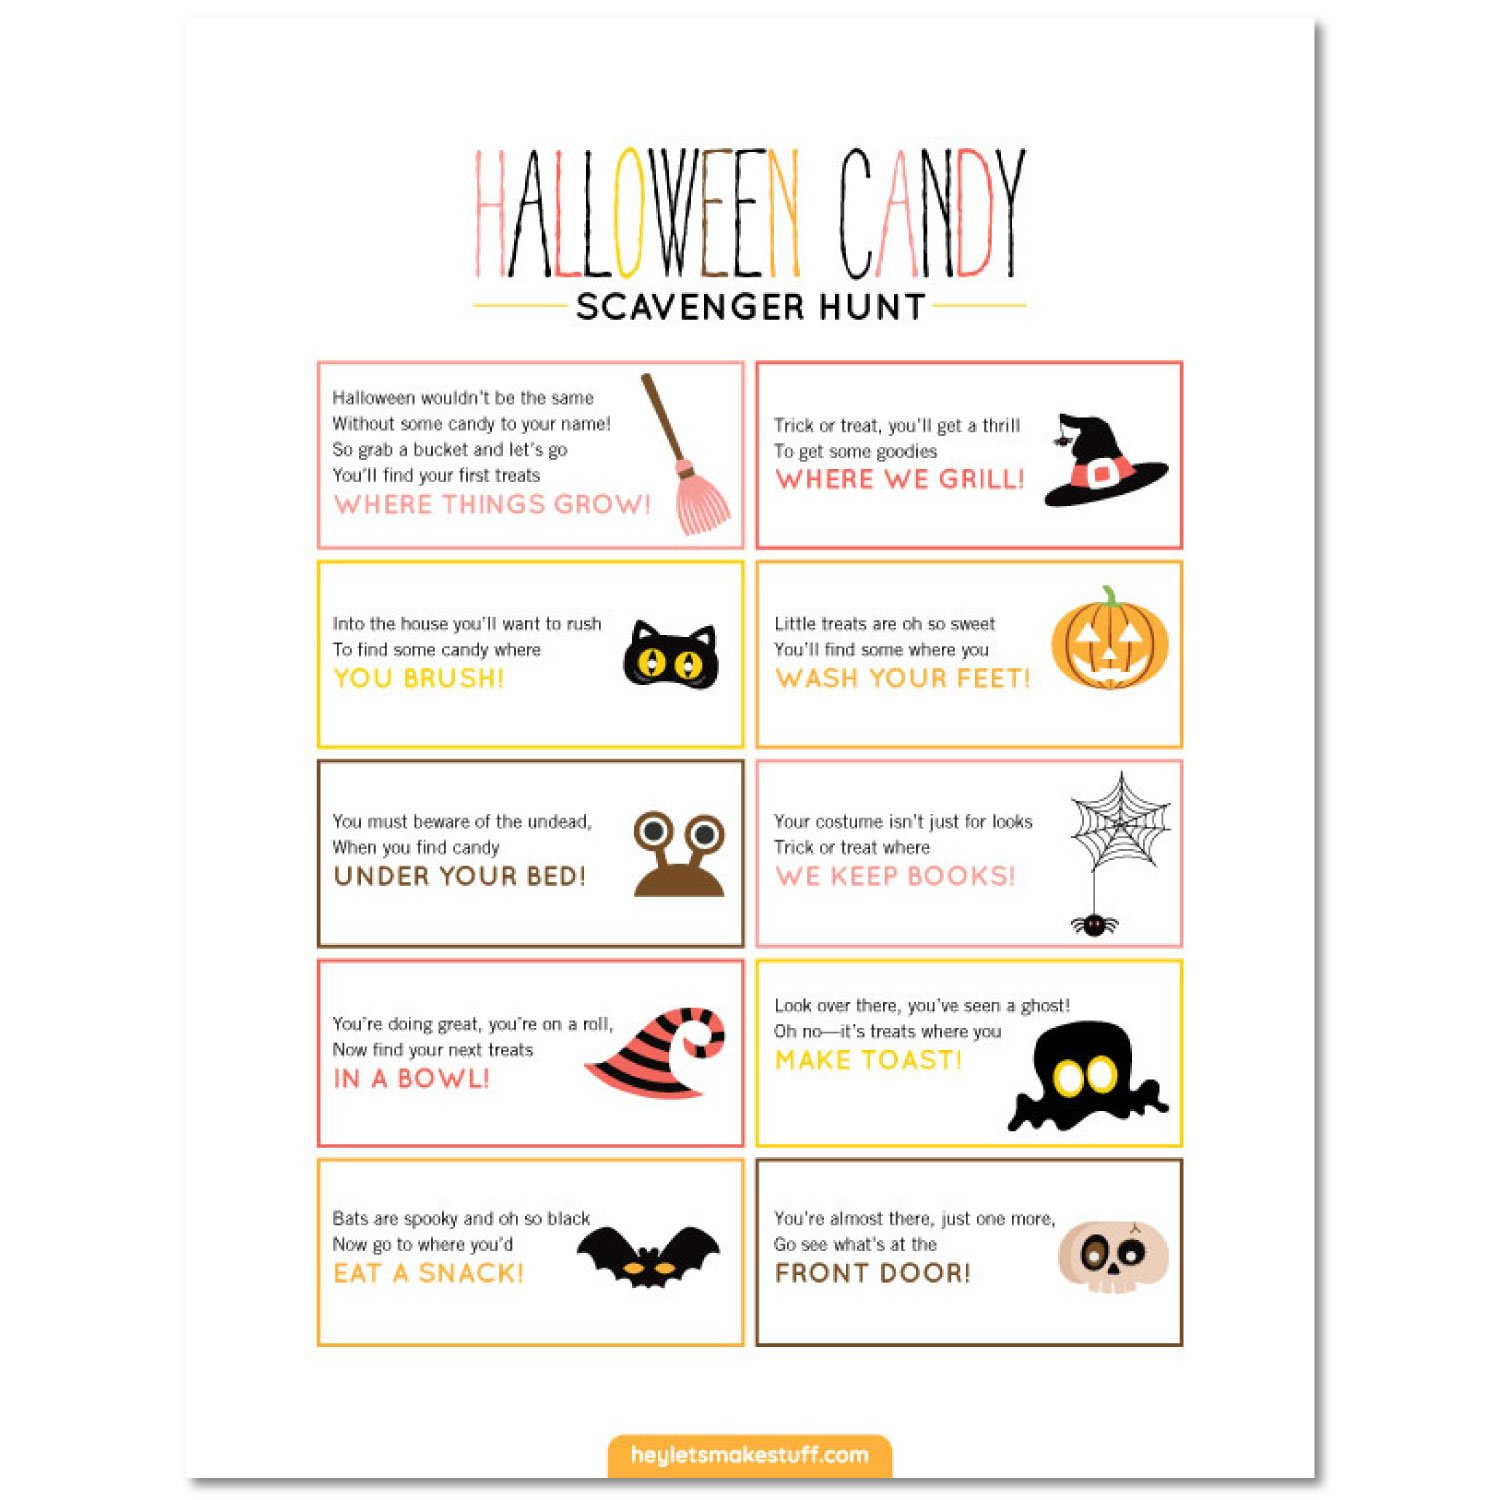 Halloween Scavenger Hunt clues